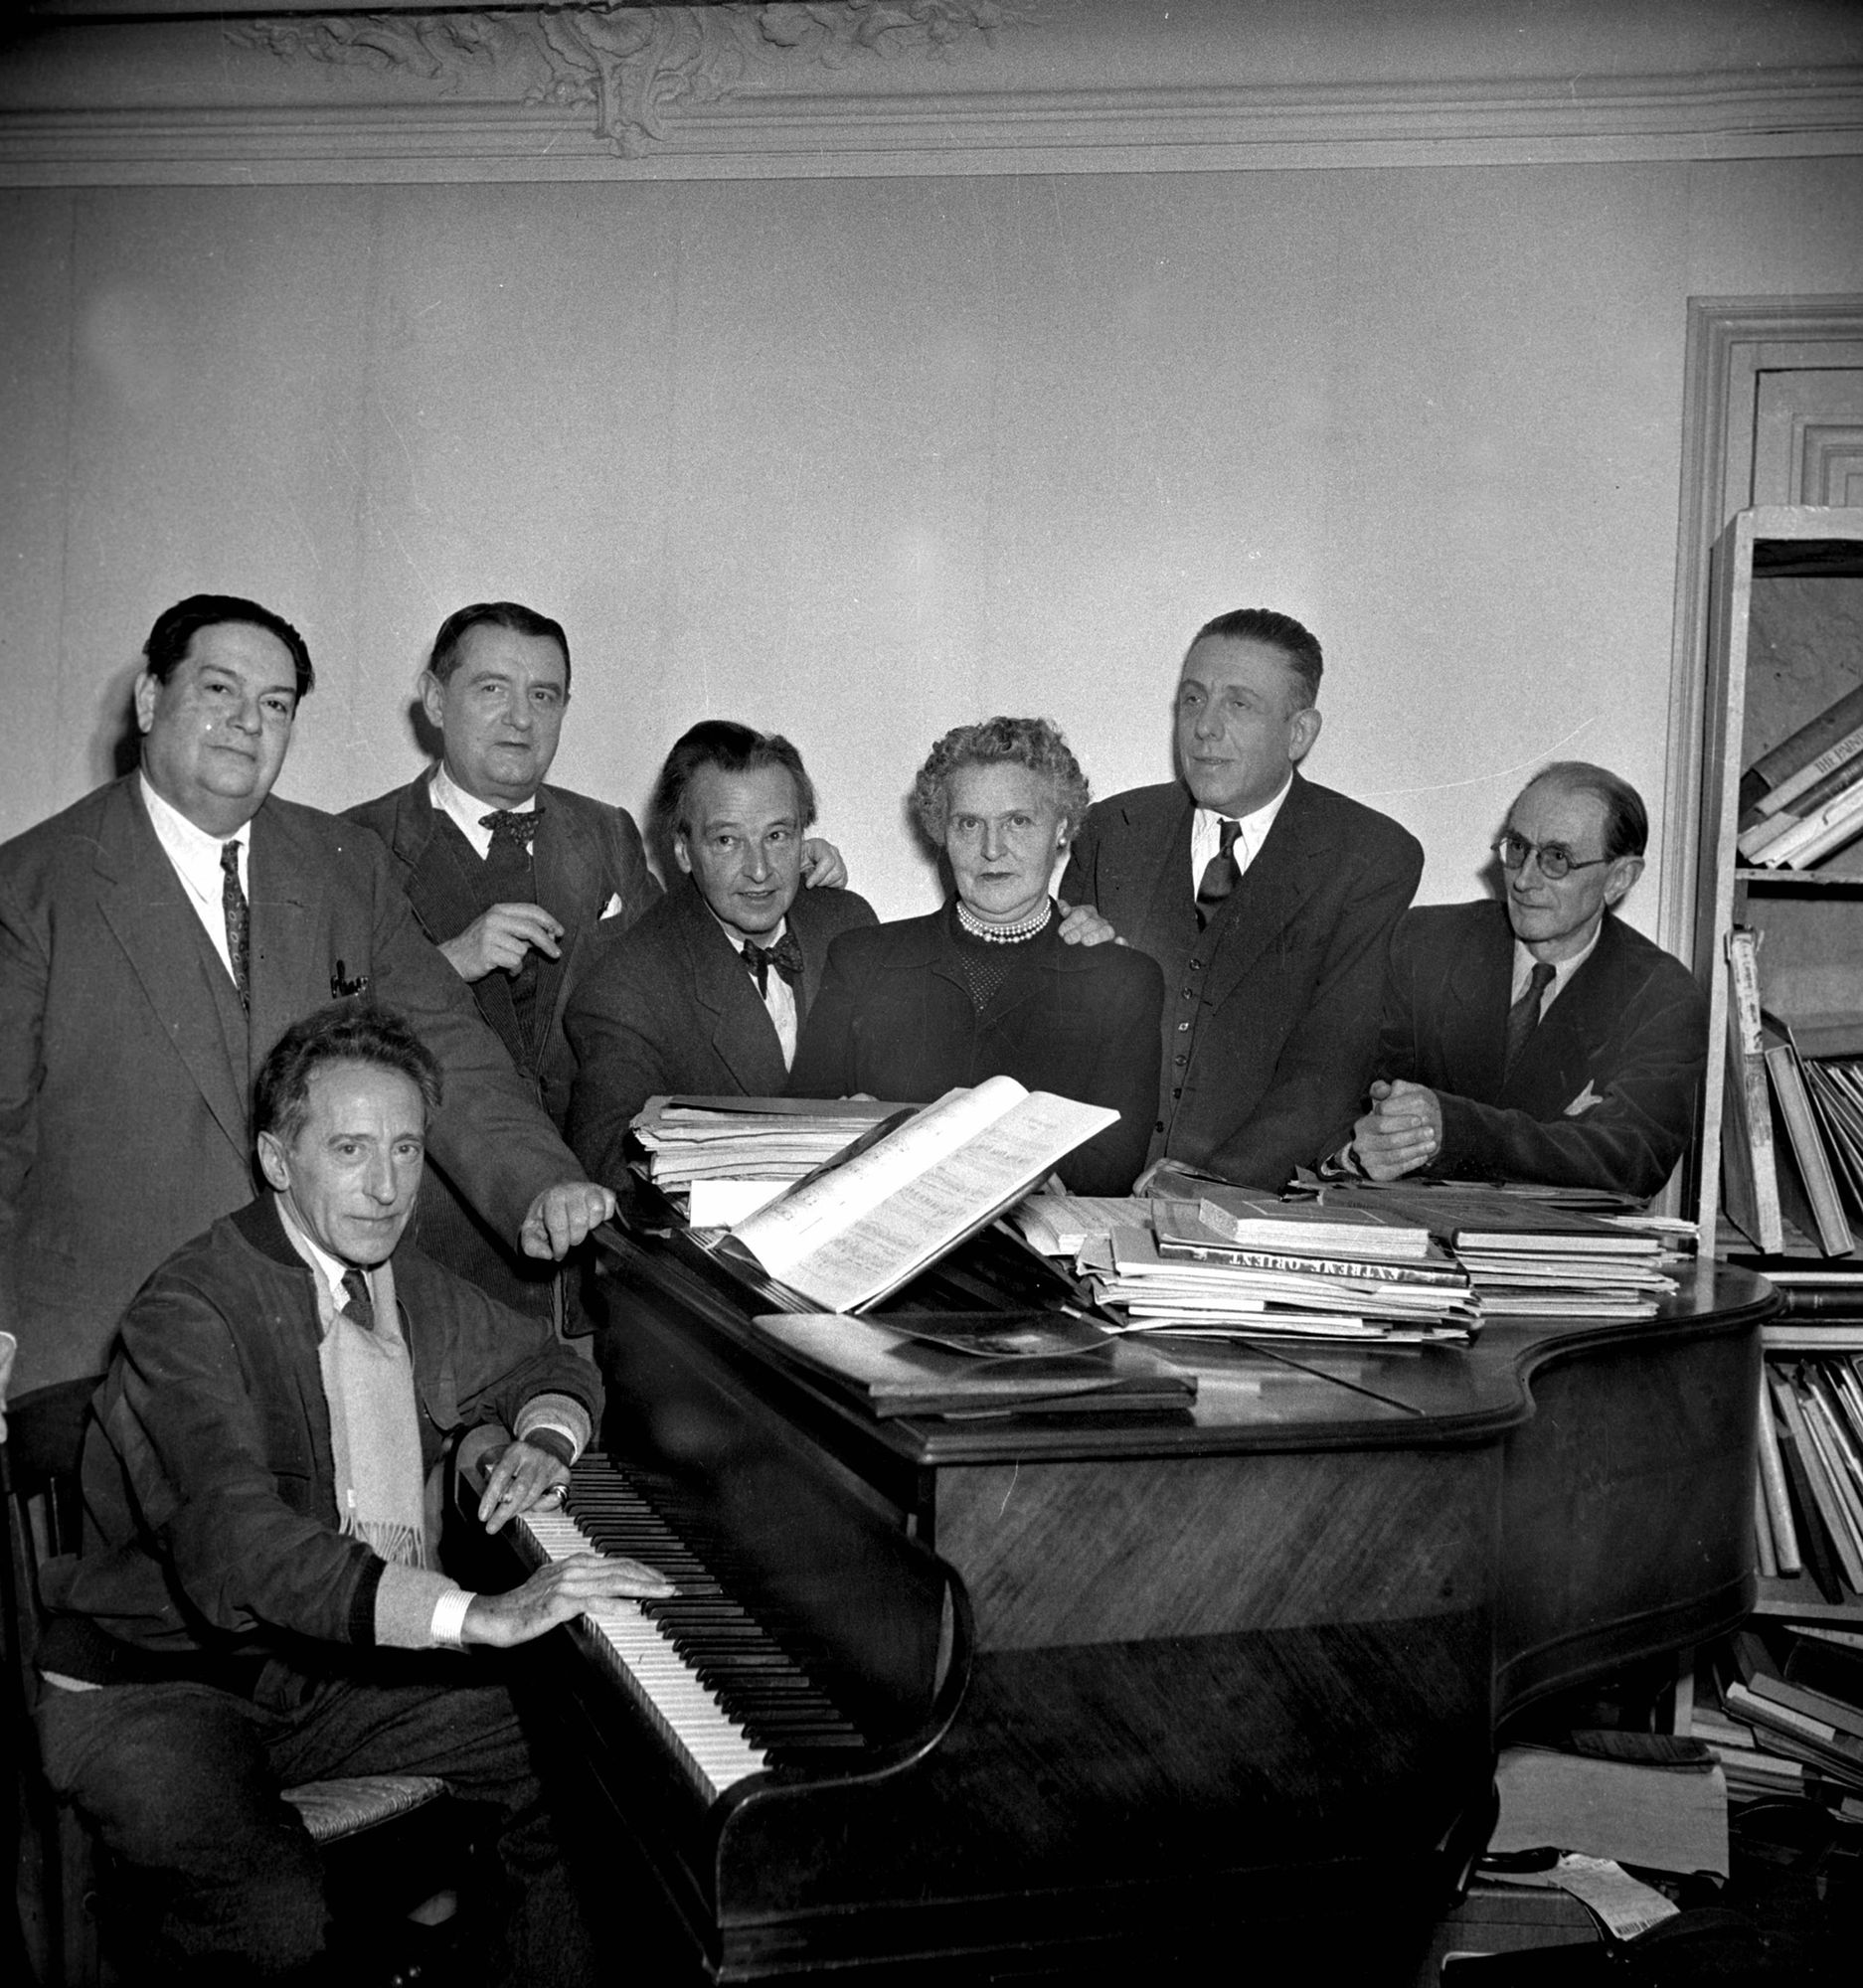 Groupe des Six: Darius Milhaud, Georges Auric, Arthur Honegger, Germaine Tailleferre, Francis Poulenc, Louis Durey, et Jean Cocteau au piano, en décembre 1951.